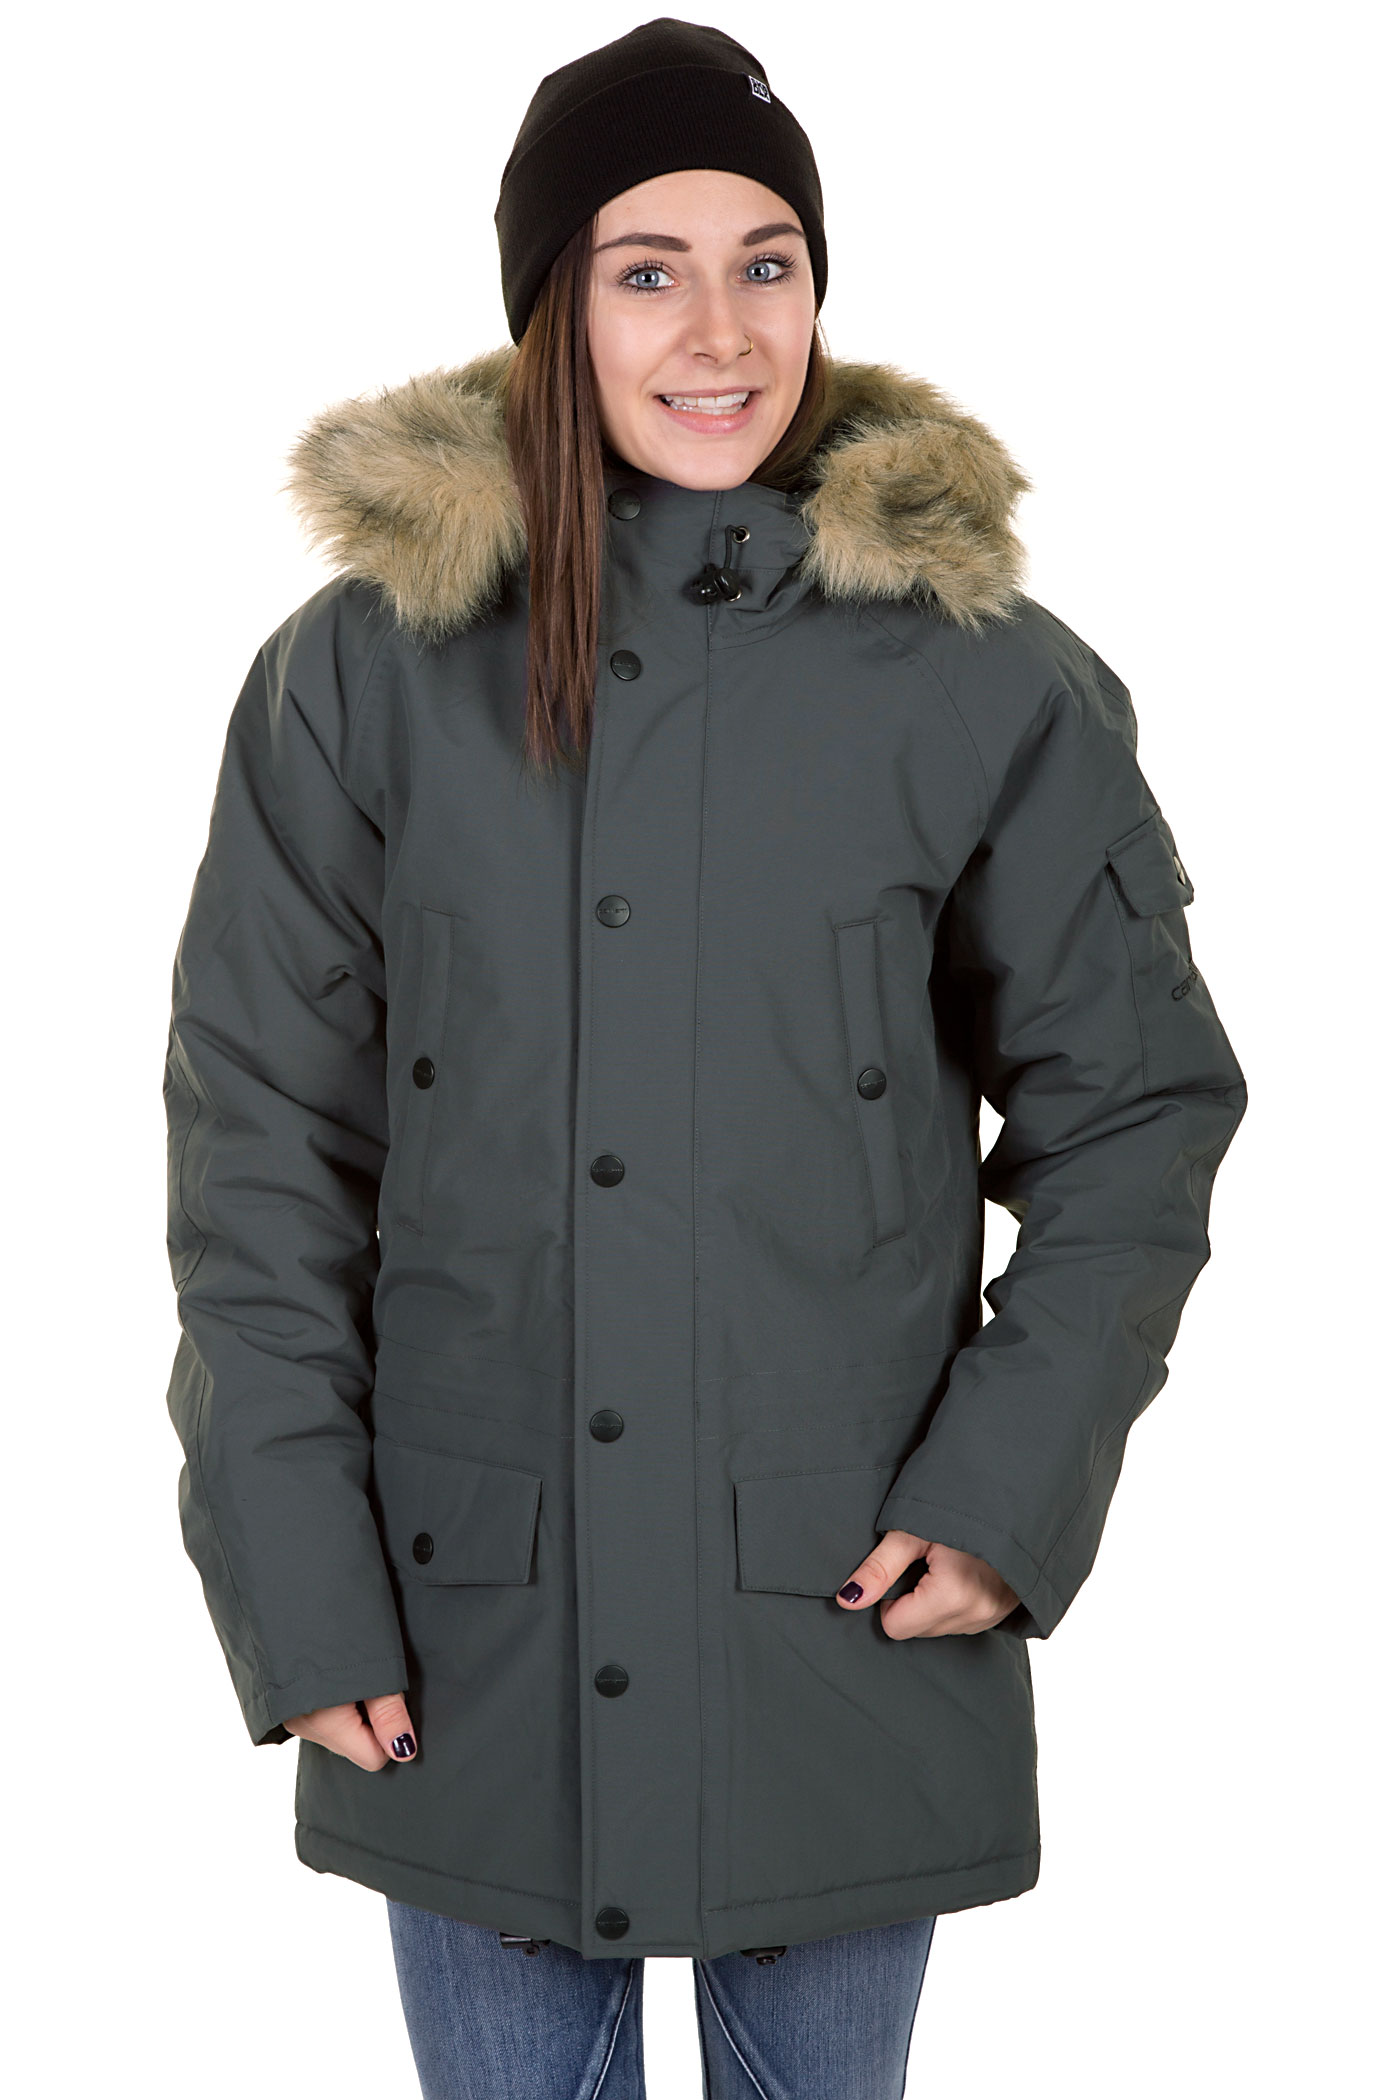 carhartt anchorage parka jacket women blacksmith buy at. Black Bedroom Furniture Sets. Home Design Ideas